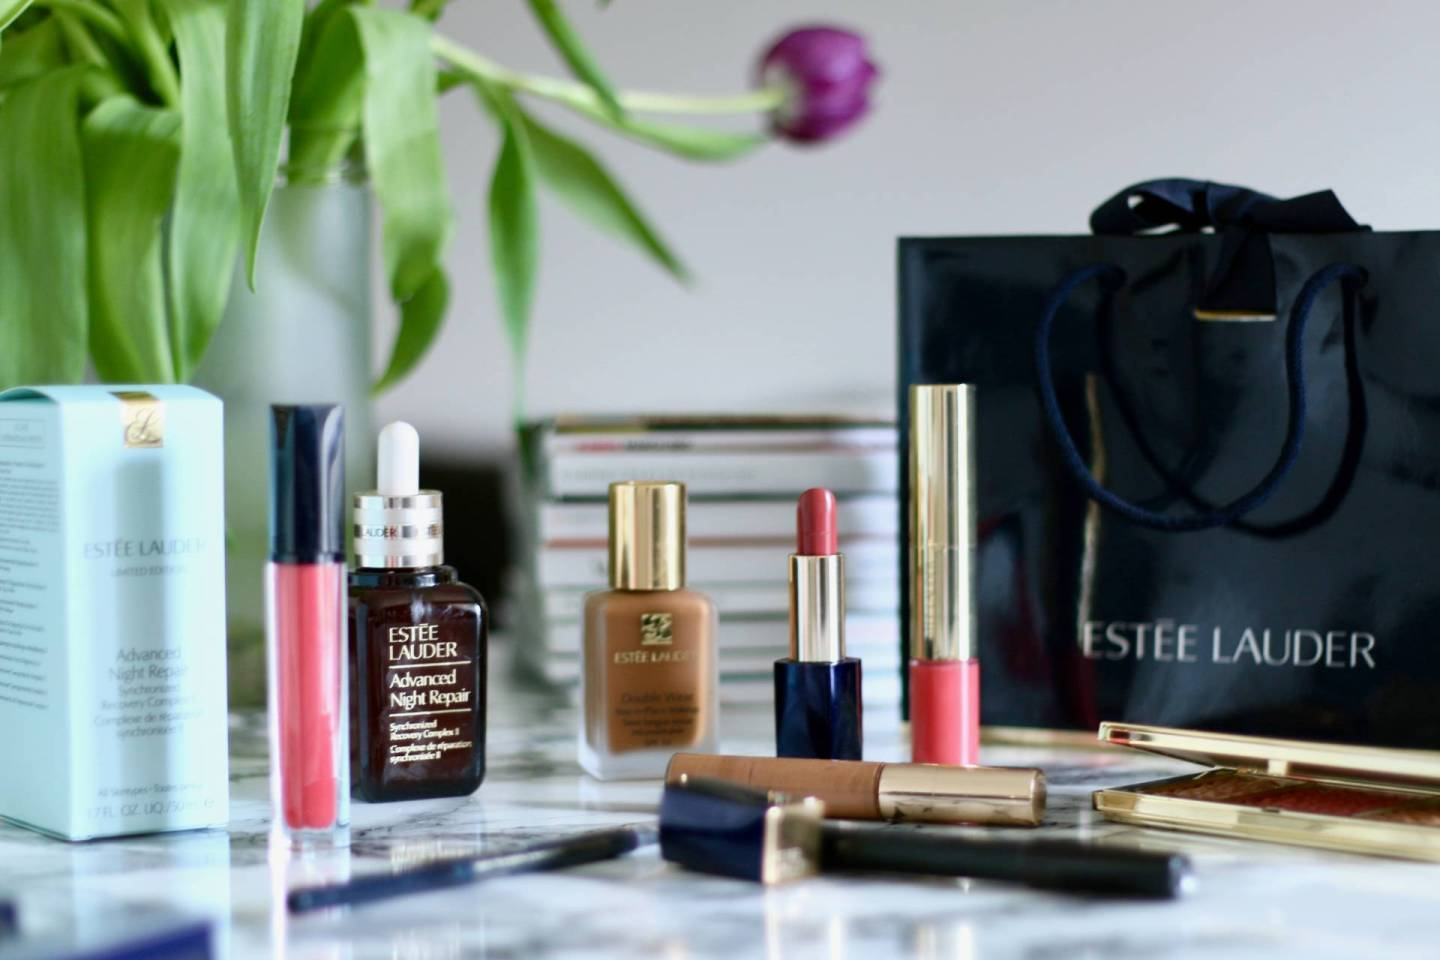 ESTÉE LAUDER X POPMYDAY | Your Make-up story